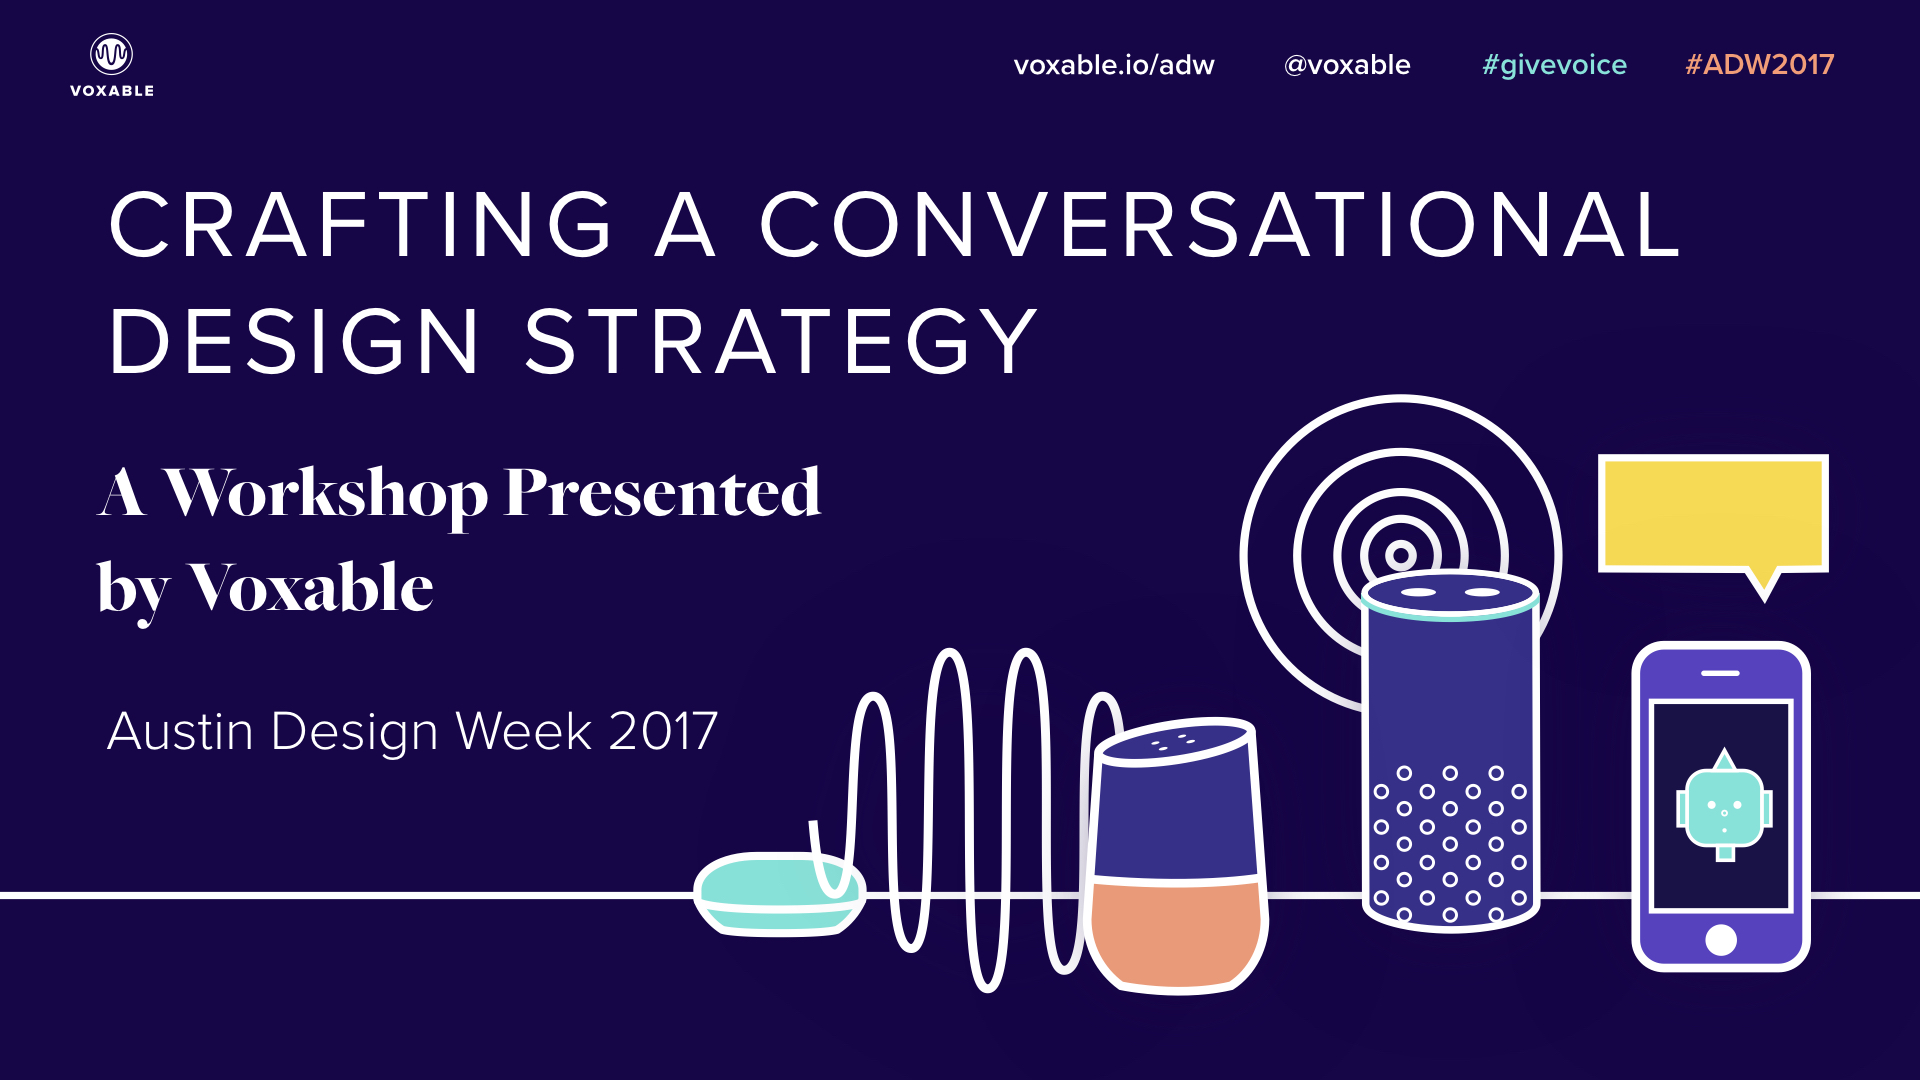 Crafting a Conversational Design Strategy - A Workshop Presented by Voxable